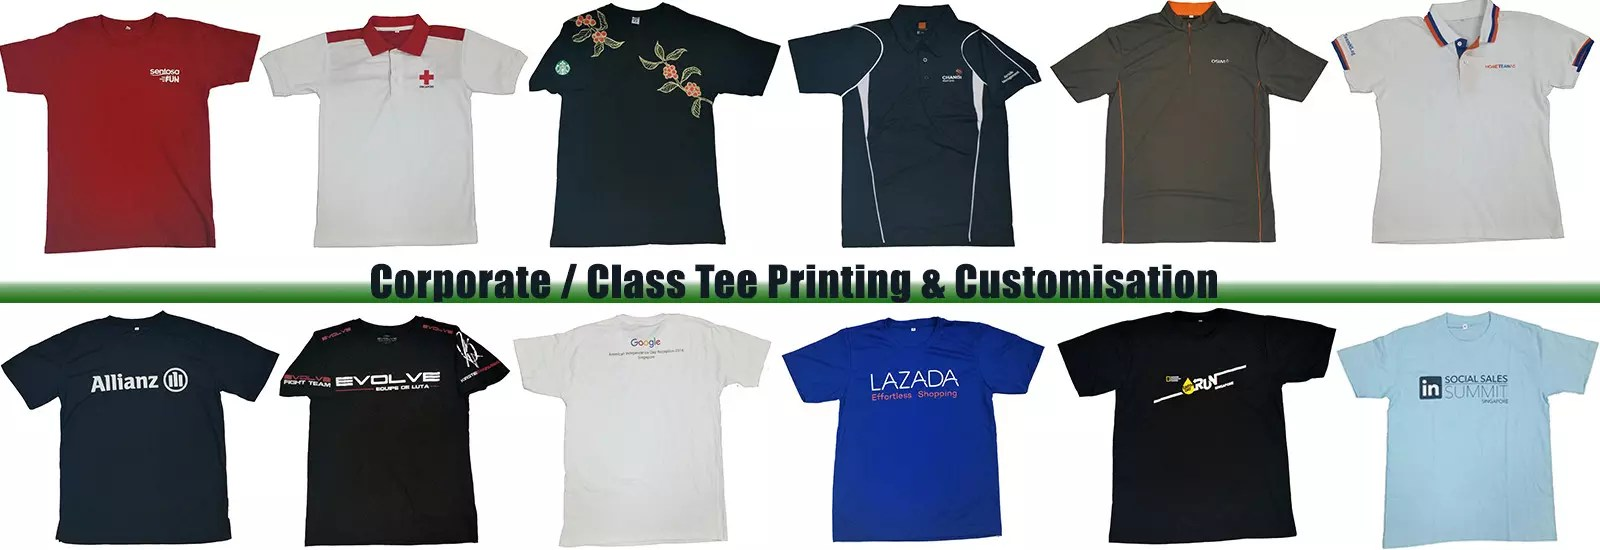 1d56e348551 T Shirt Printing Services Singapore for Corporate